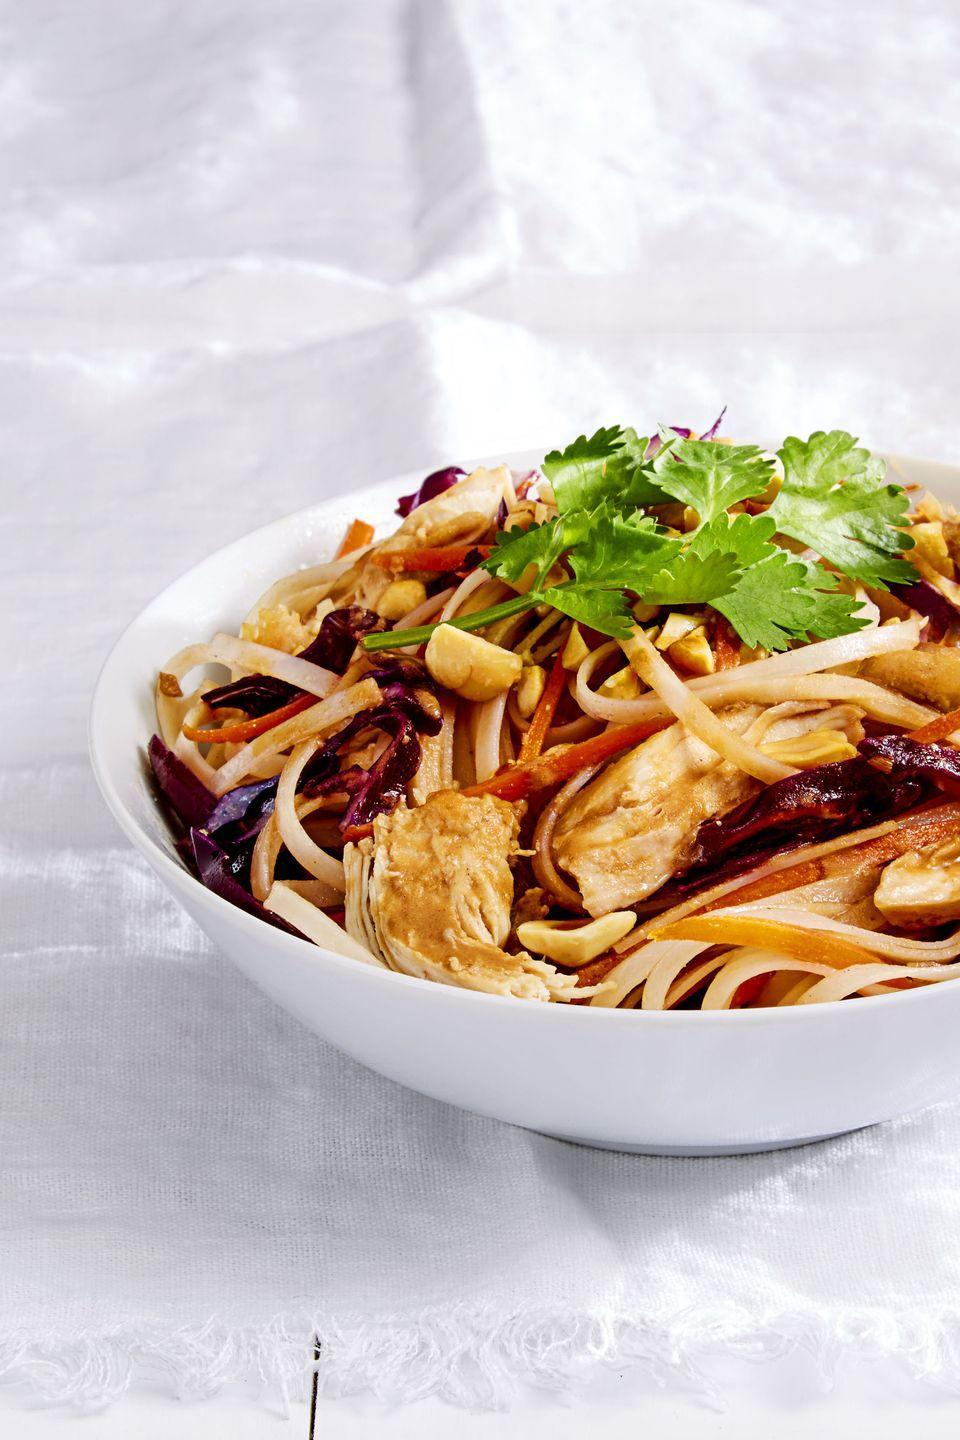 "<p>Have dinner ready in six minutes — not even joking.</p><p><em><a href=""https://www.goodhousekeeping.com/food-recipes/easy/a36675/nutty-chicken-noodles/"" rel=""nofollow noopener"" target=""_blank"" data-ylk=""slk:Get the recipe for Nutty Chicken Noodles »"" class=""link rapid-noclick-resp"">Get the recipe for Nutty Chicken Noodles »</a></em></p>"